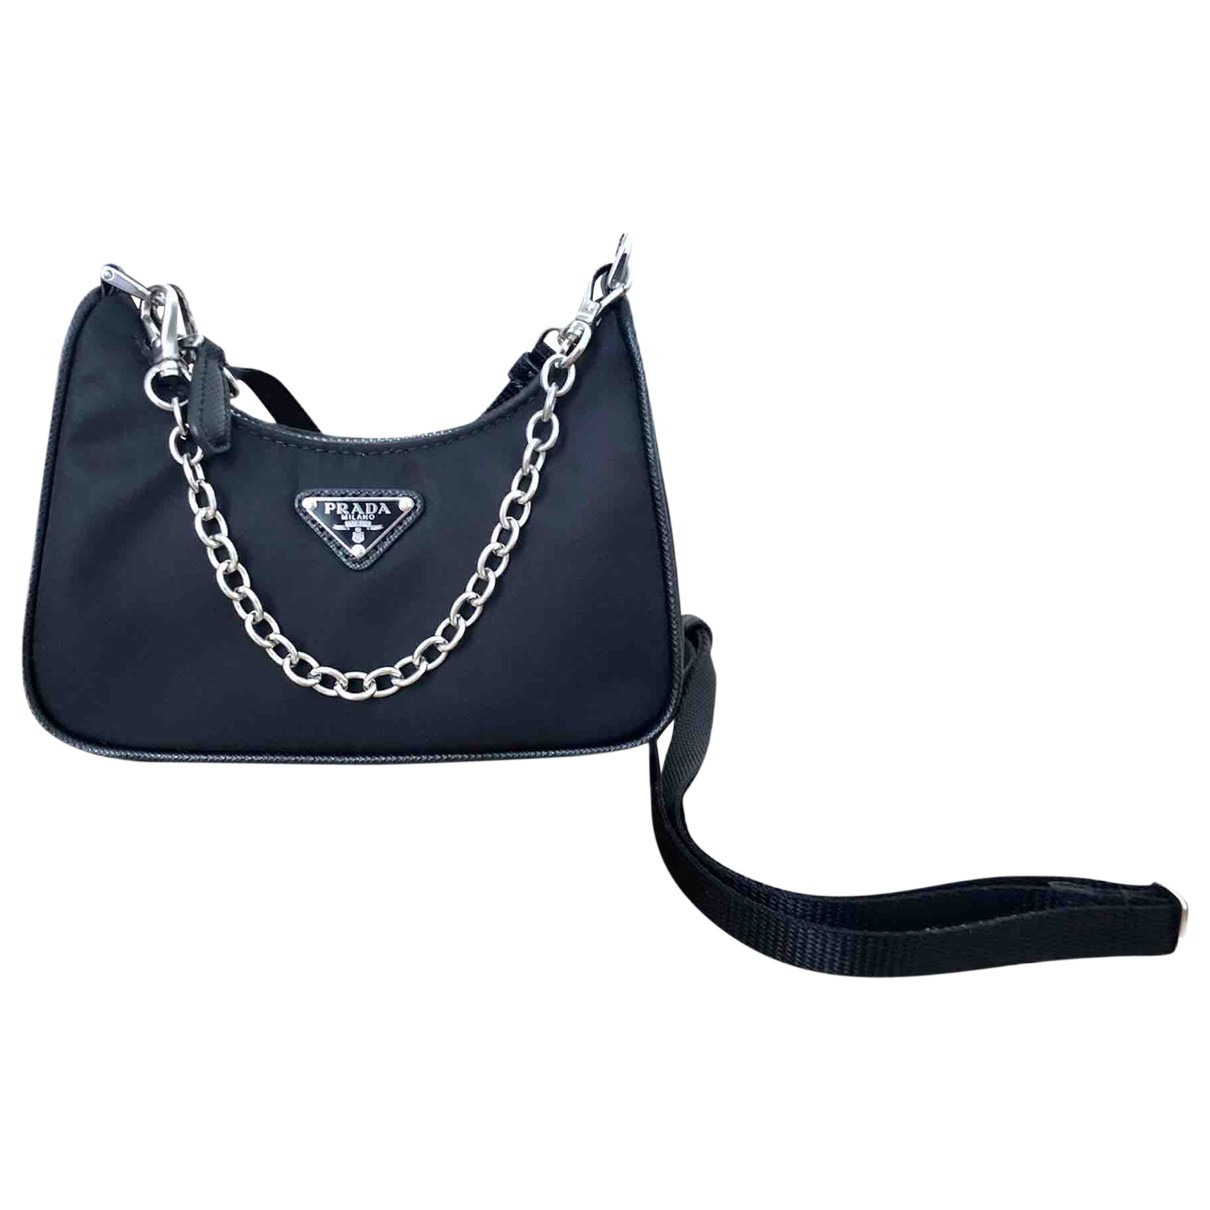 Bolso  Re-edition de Lona Prada